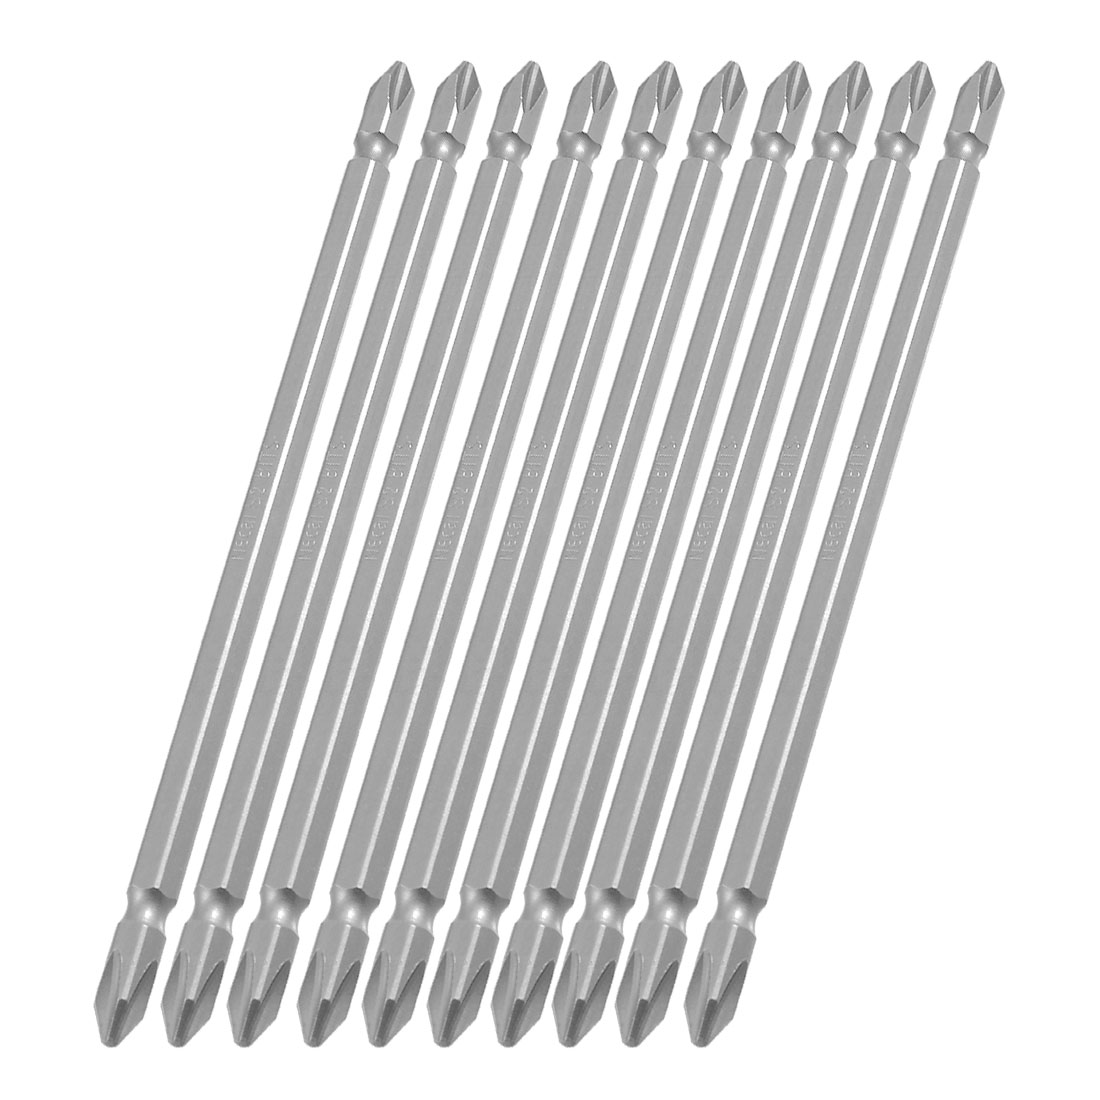 "10Pcs 1/4"" Hex Shank 150mm Long 6mm Double End PH2 Phillips Screwdriver Bits"